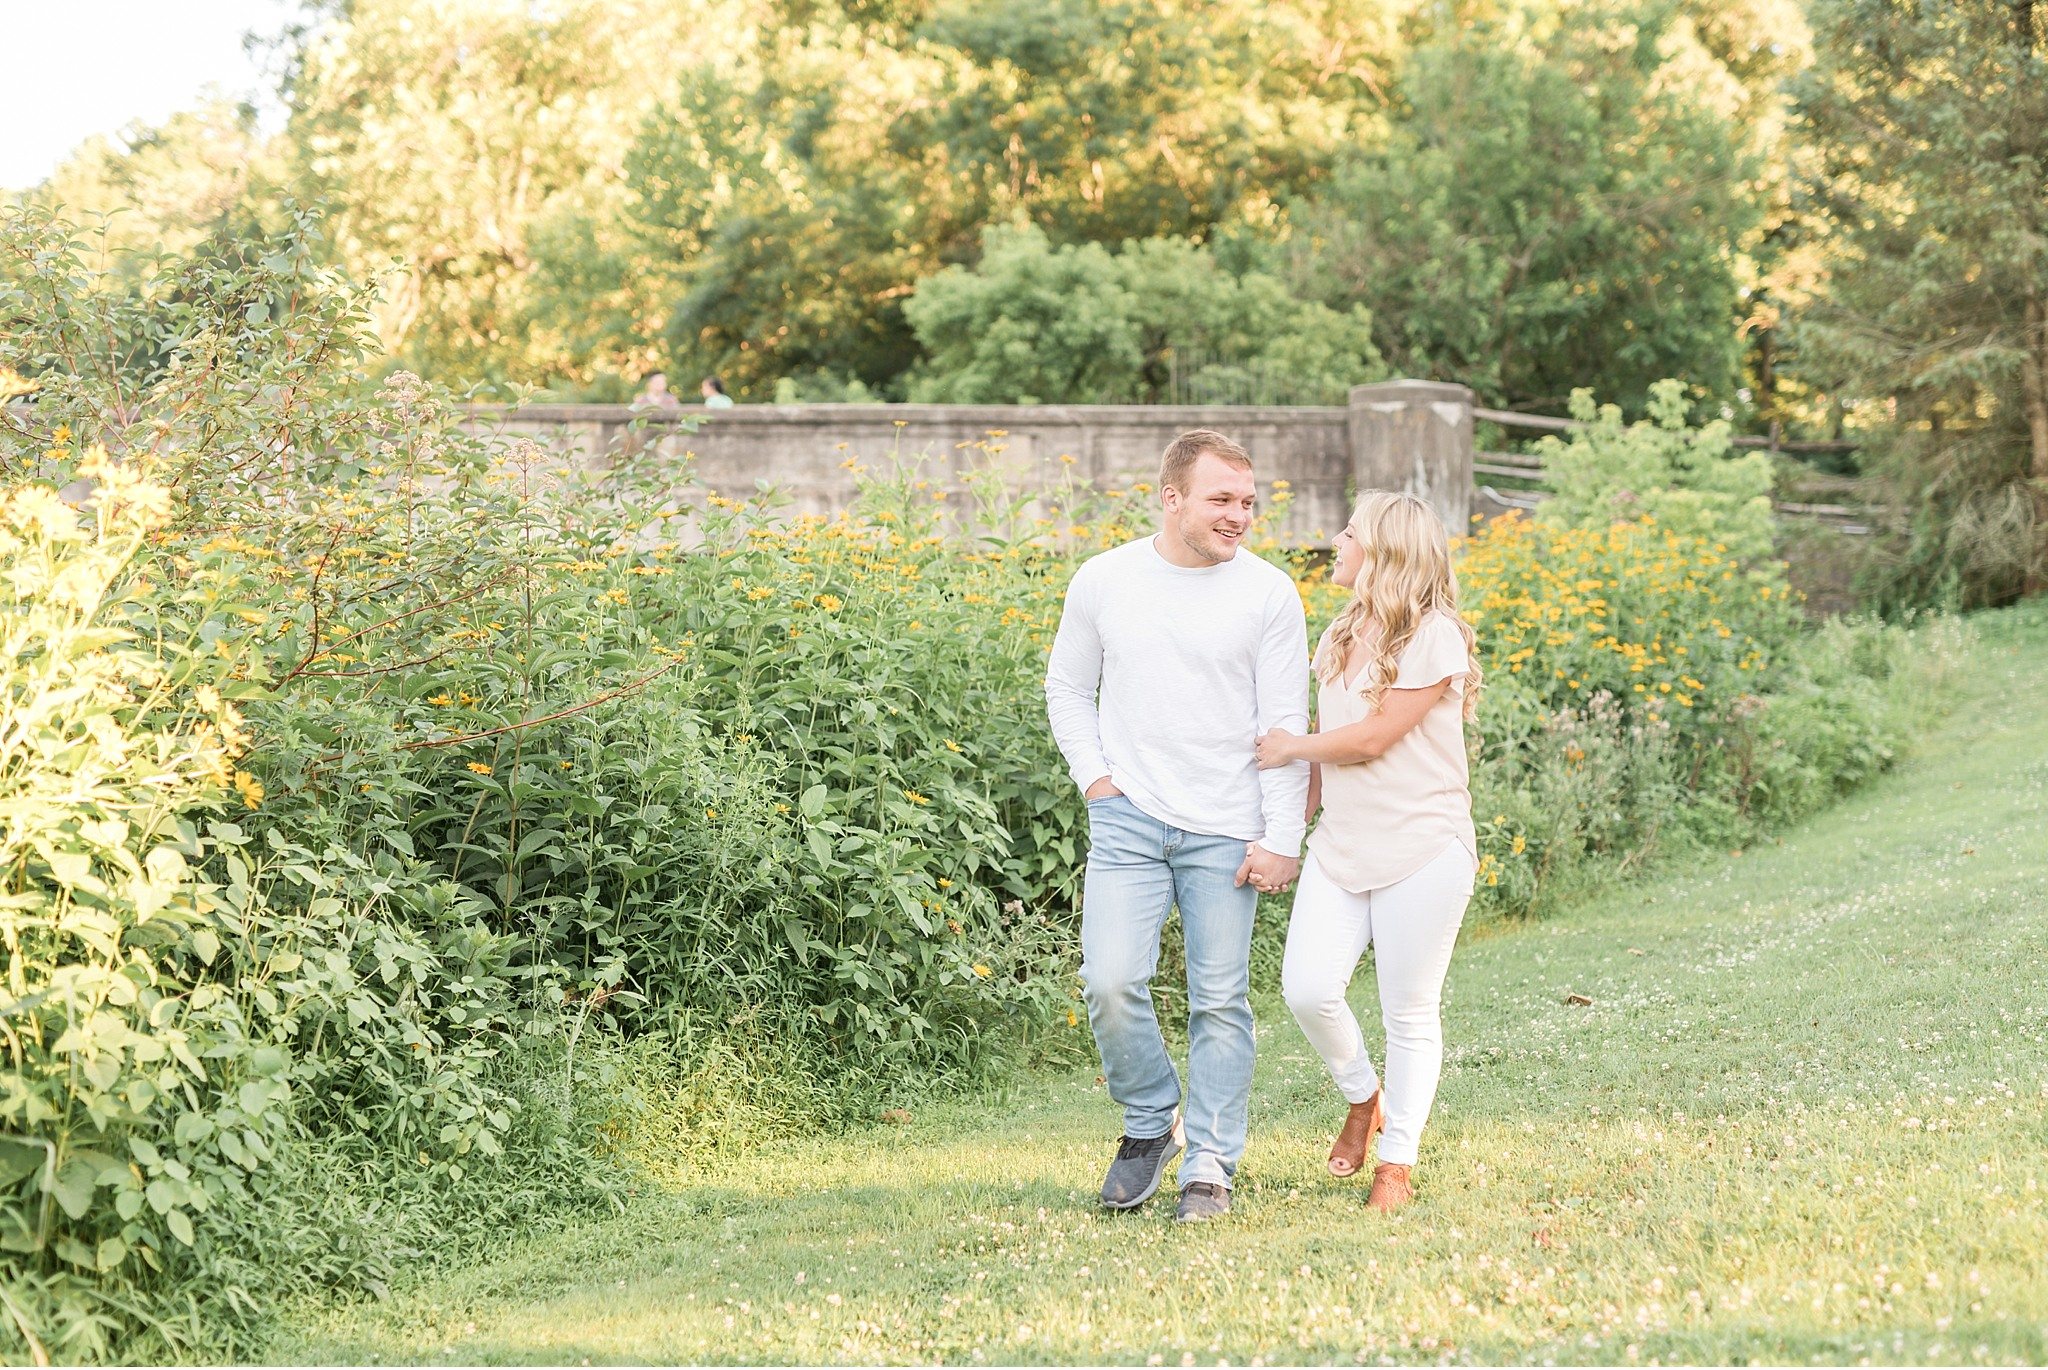 Grings Mill Berks County Light and Airy engagement session at golden sun Wedding Photography photo_1804.jpg